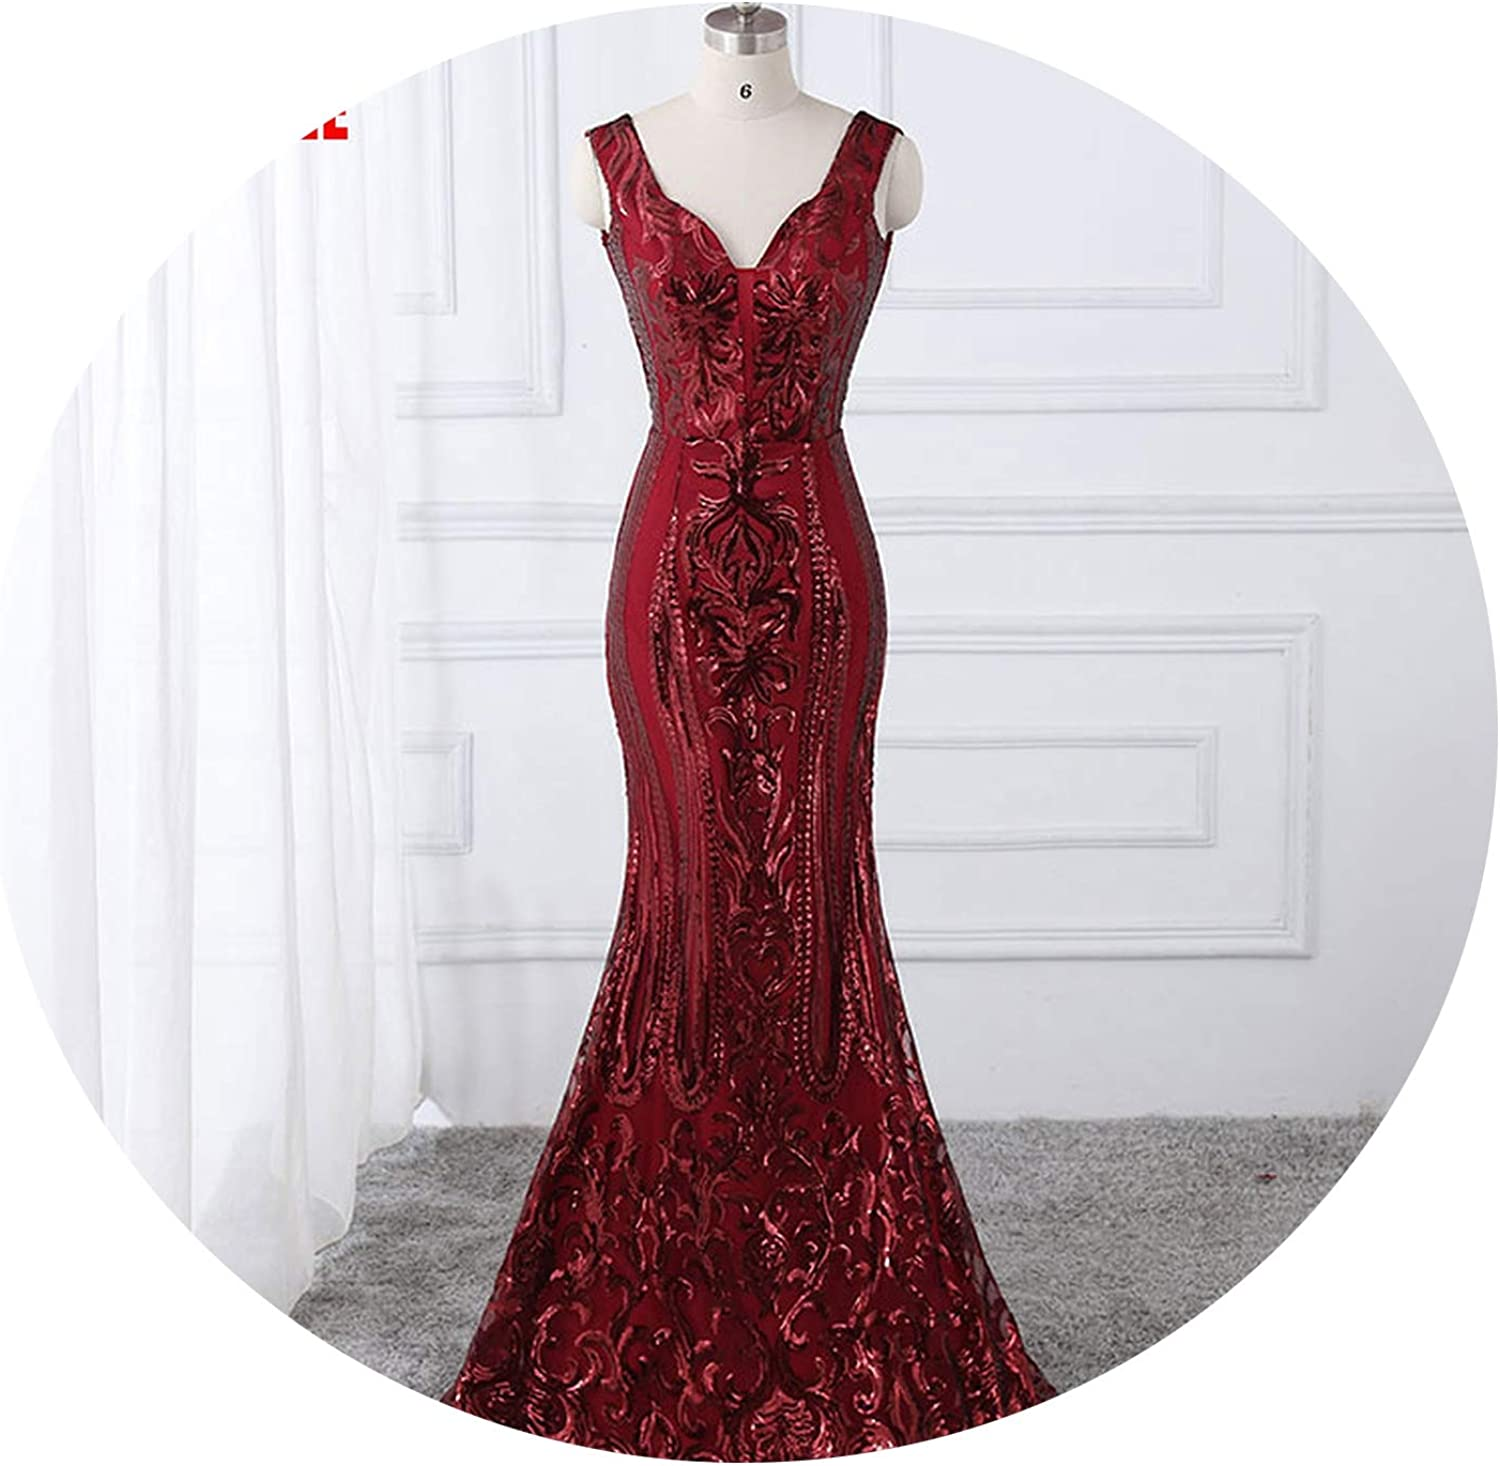 Classic Party Dress Evening Dresses Prom Bling Sexy VNeck Sequins Style